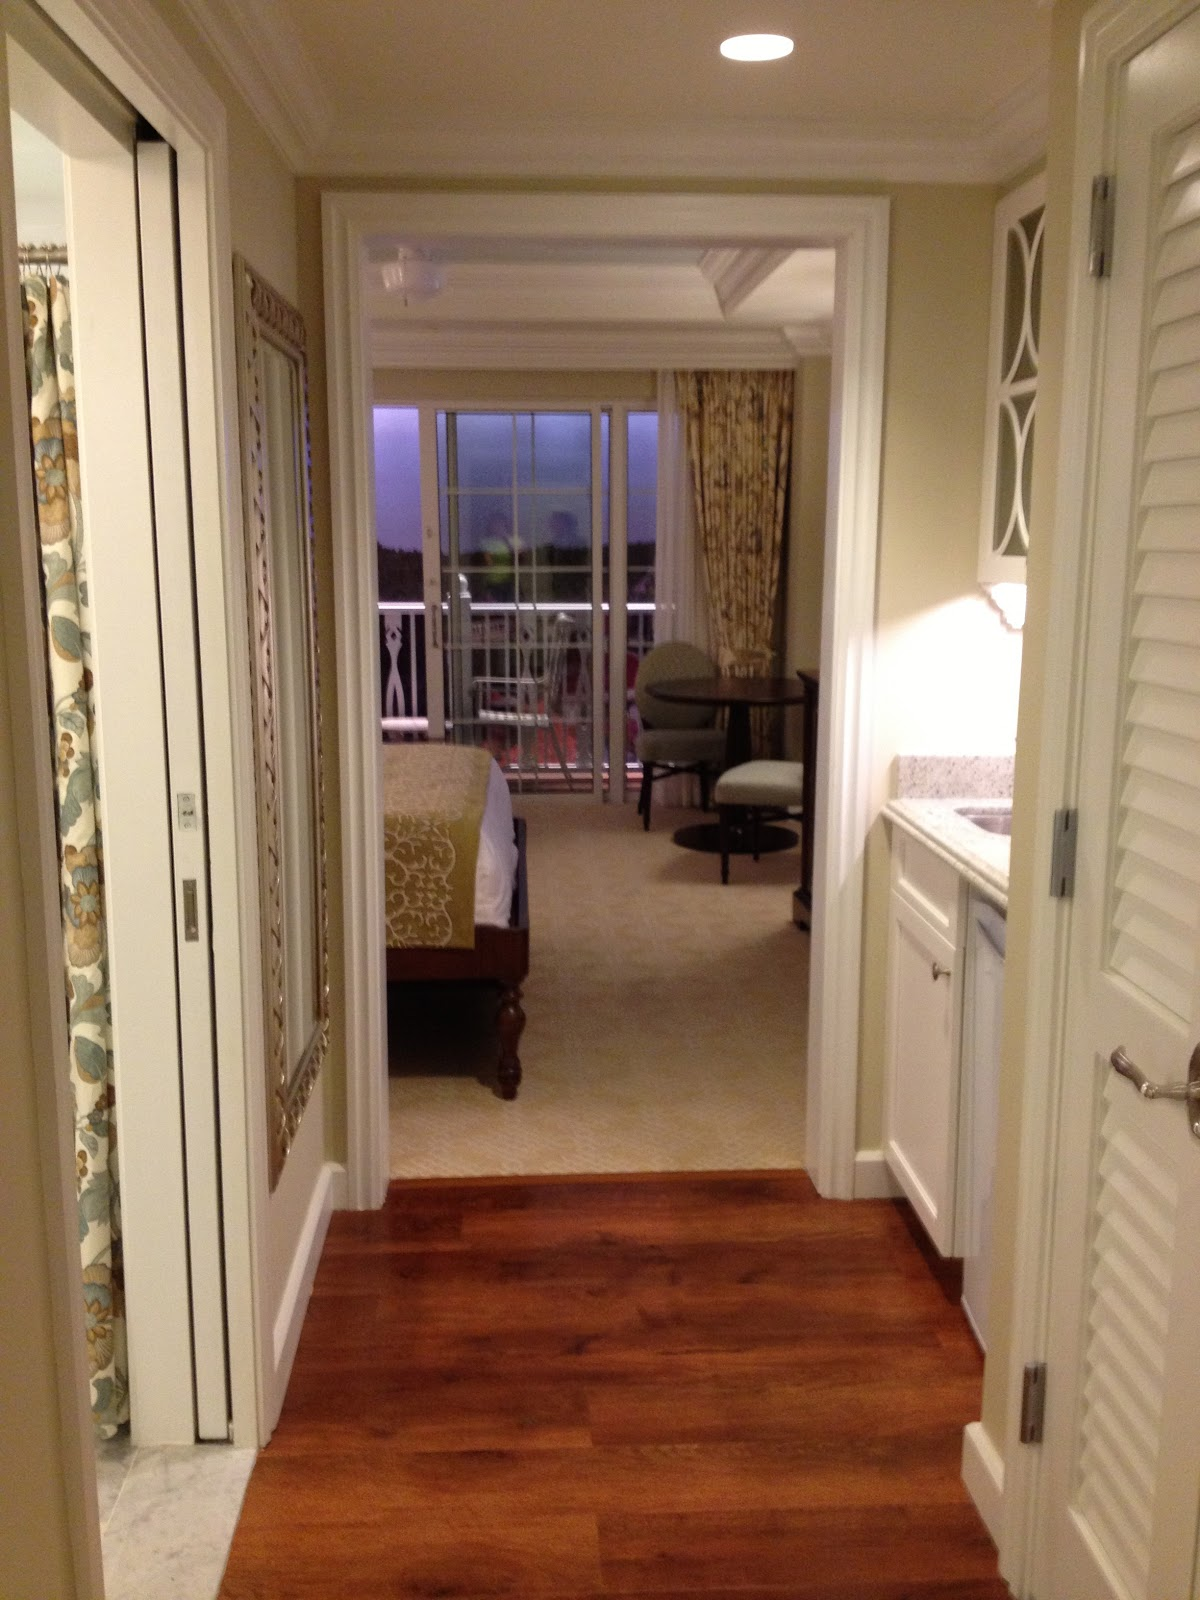 General Splendour : I'm Moving To The Grand Floridian In